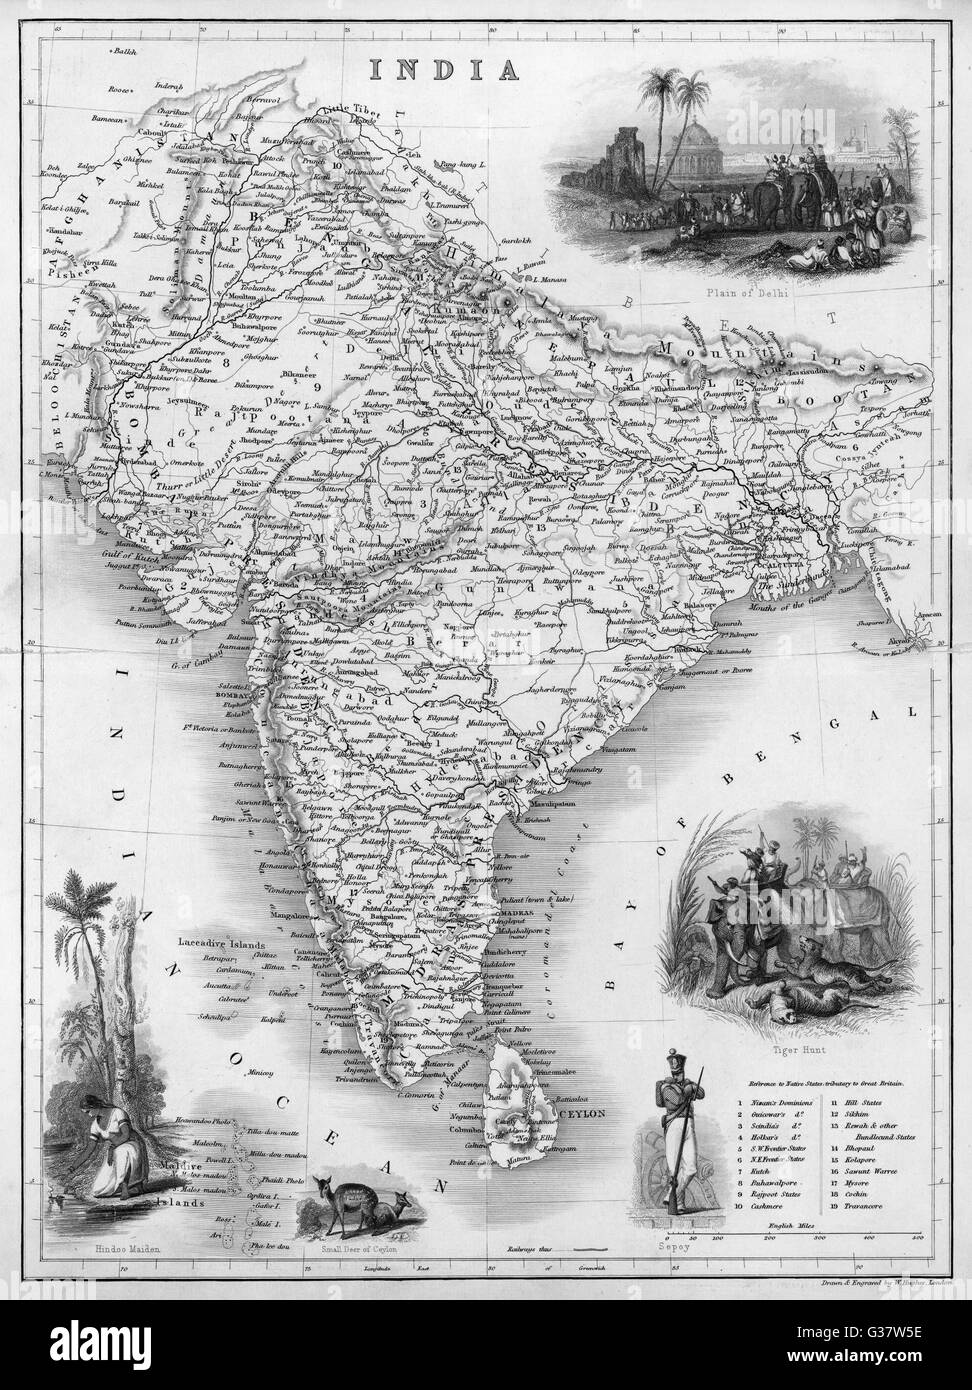 british rule in india and the British empire gallery 2 case study 4 this case study considers the nature of british rule in india and uses documents from the national archives.